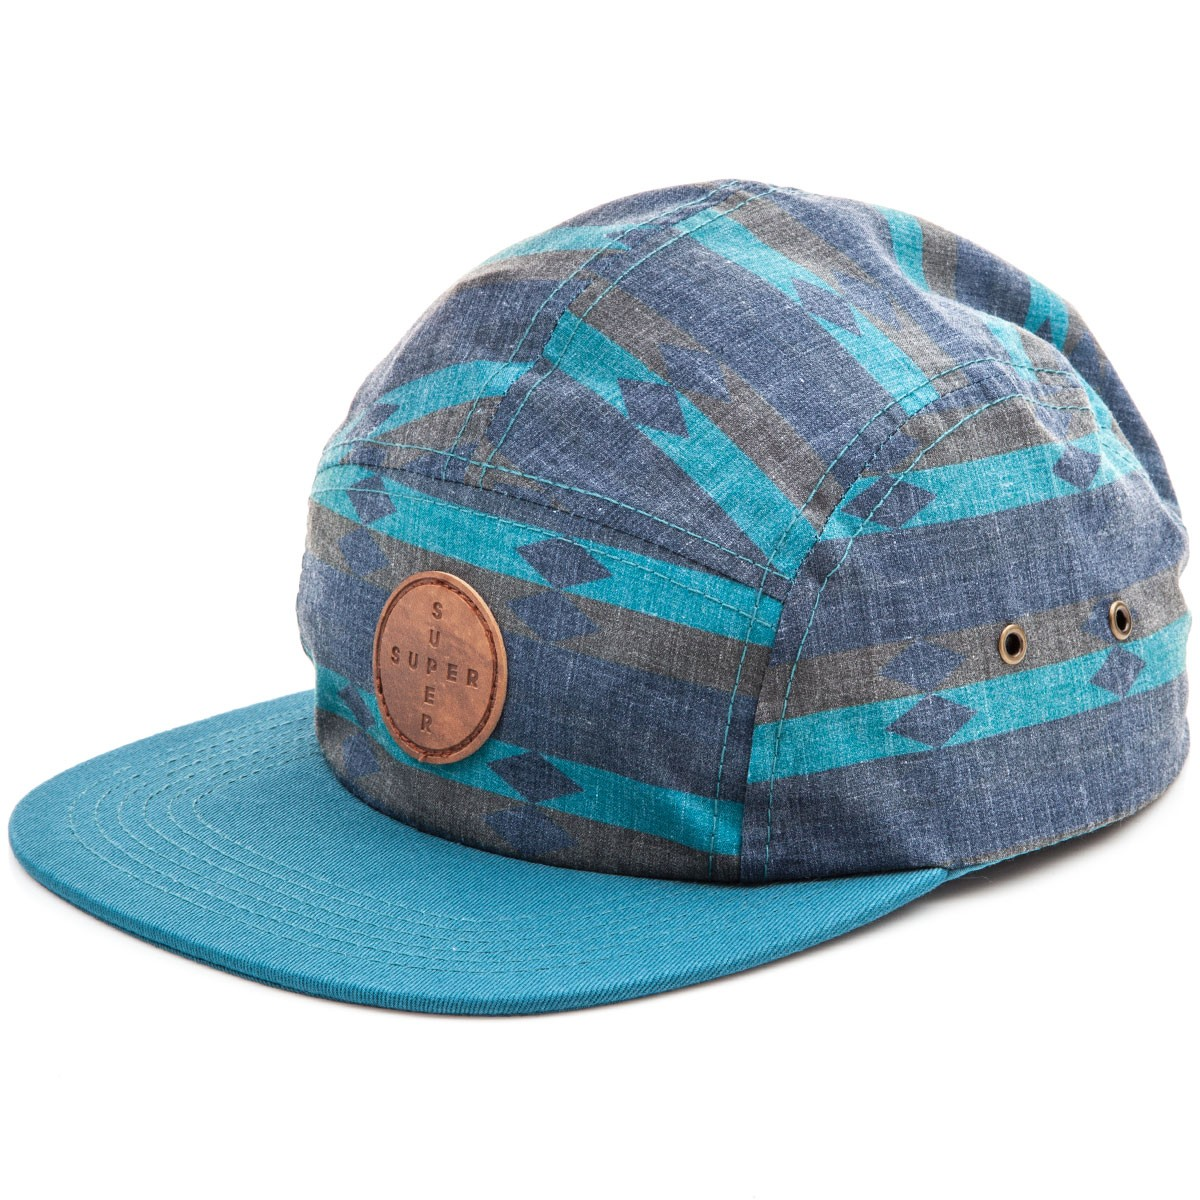 SUPERbrand Local Hat - Ocean